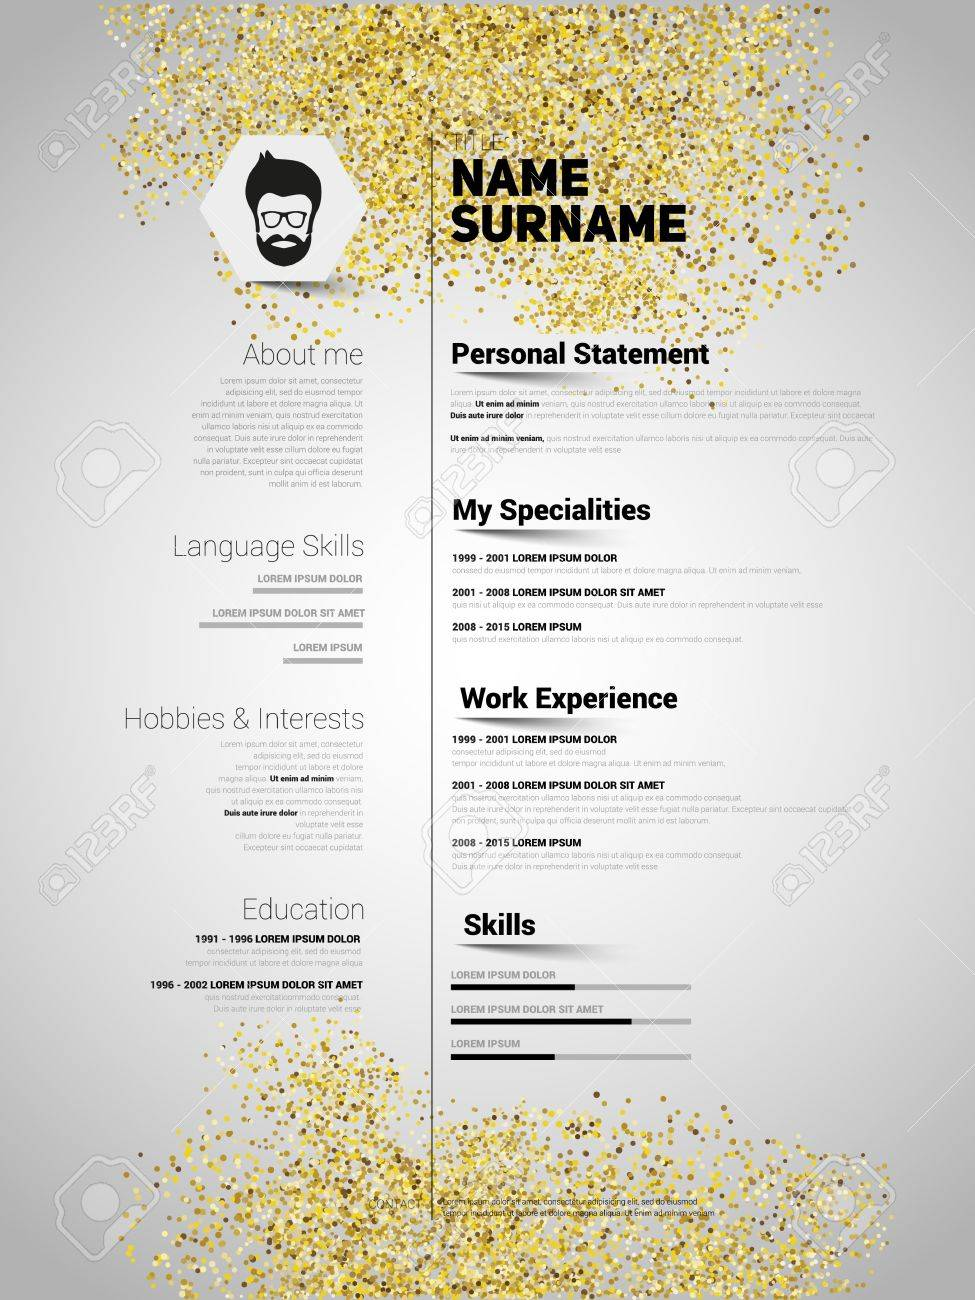 Resume Minimalist Cv In Gold Glitter Style Resume Template With